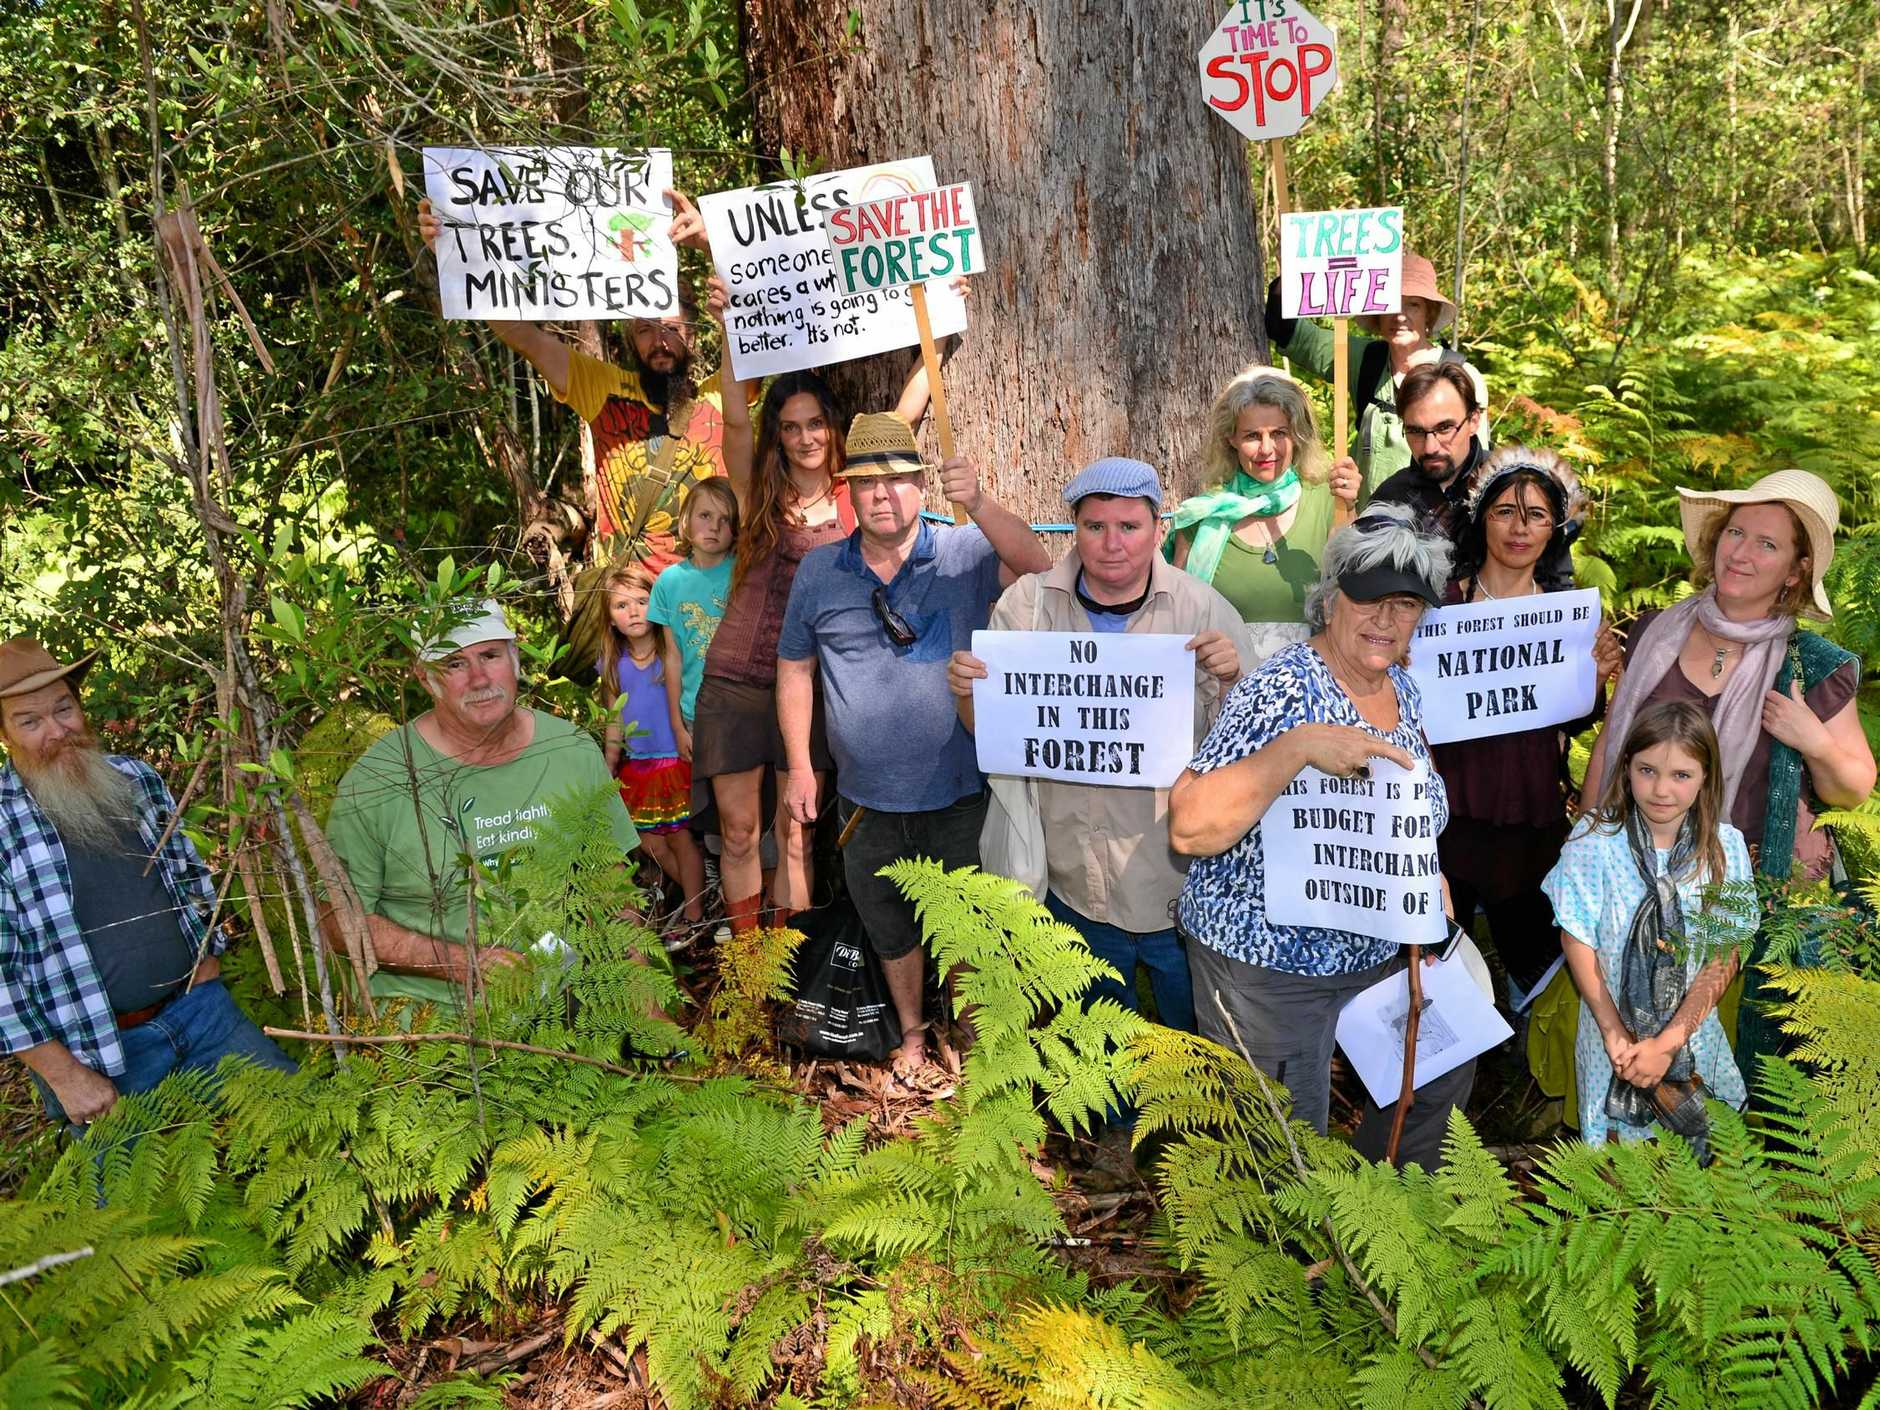 SAVE THE TREES: The Save the Steve Irwin Forest group campaigned successfully to save vegetation from being lost to the Caloundra interchange Bruce Highway infrastructure project.